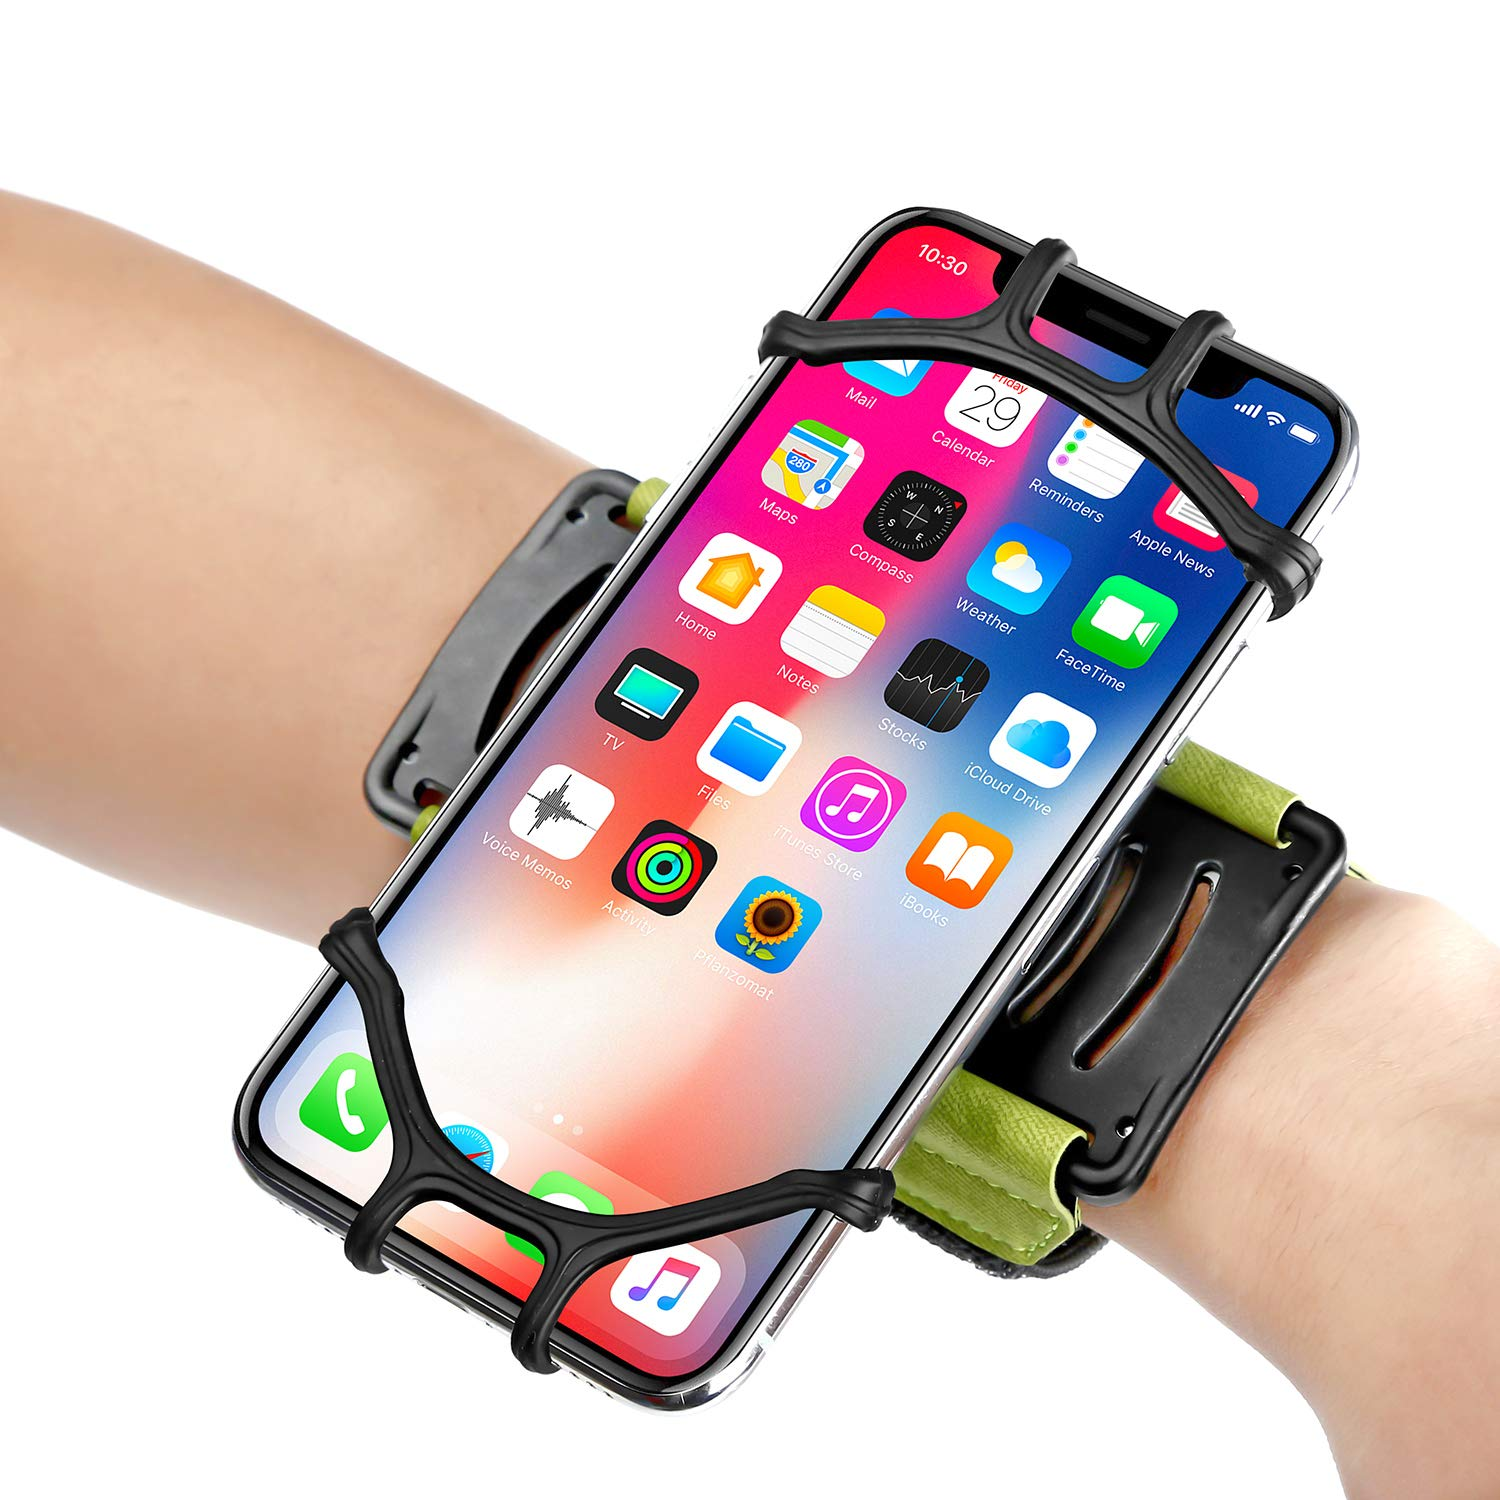 WAAO Sport Wristband, 180° Rotatable Phone Holder Forearm Armband Ideal for Jogging Running Compatible with iPhone X/8/8 Plus/7/7 Plus/6/6S Plus Samsung Galaxy S9/S8 & 4.0''-5.5'' Smartphone